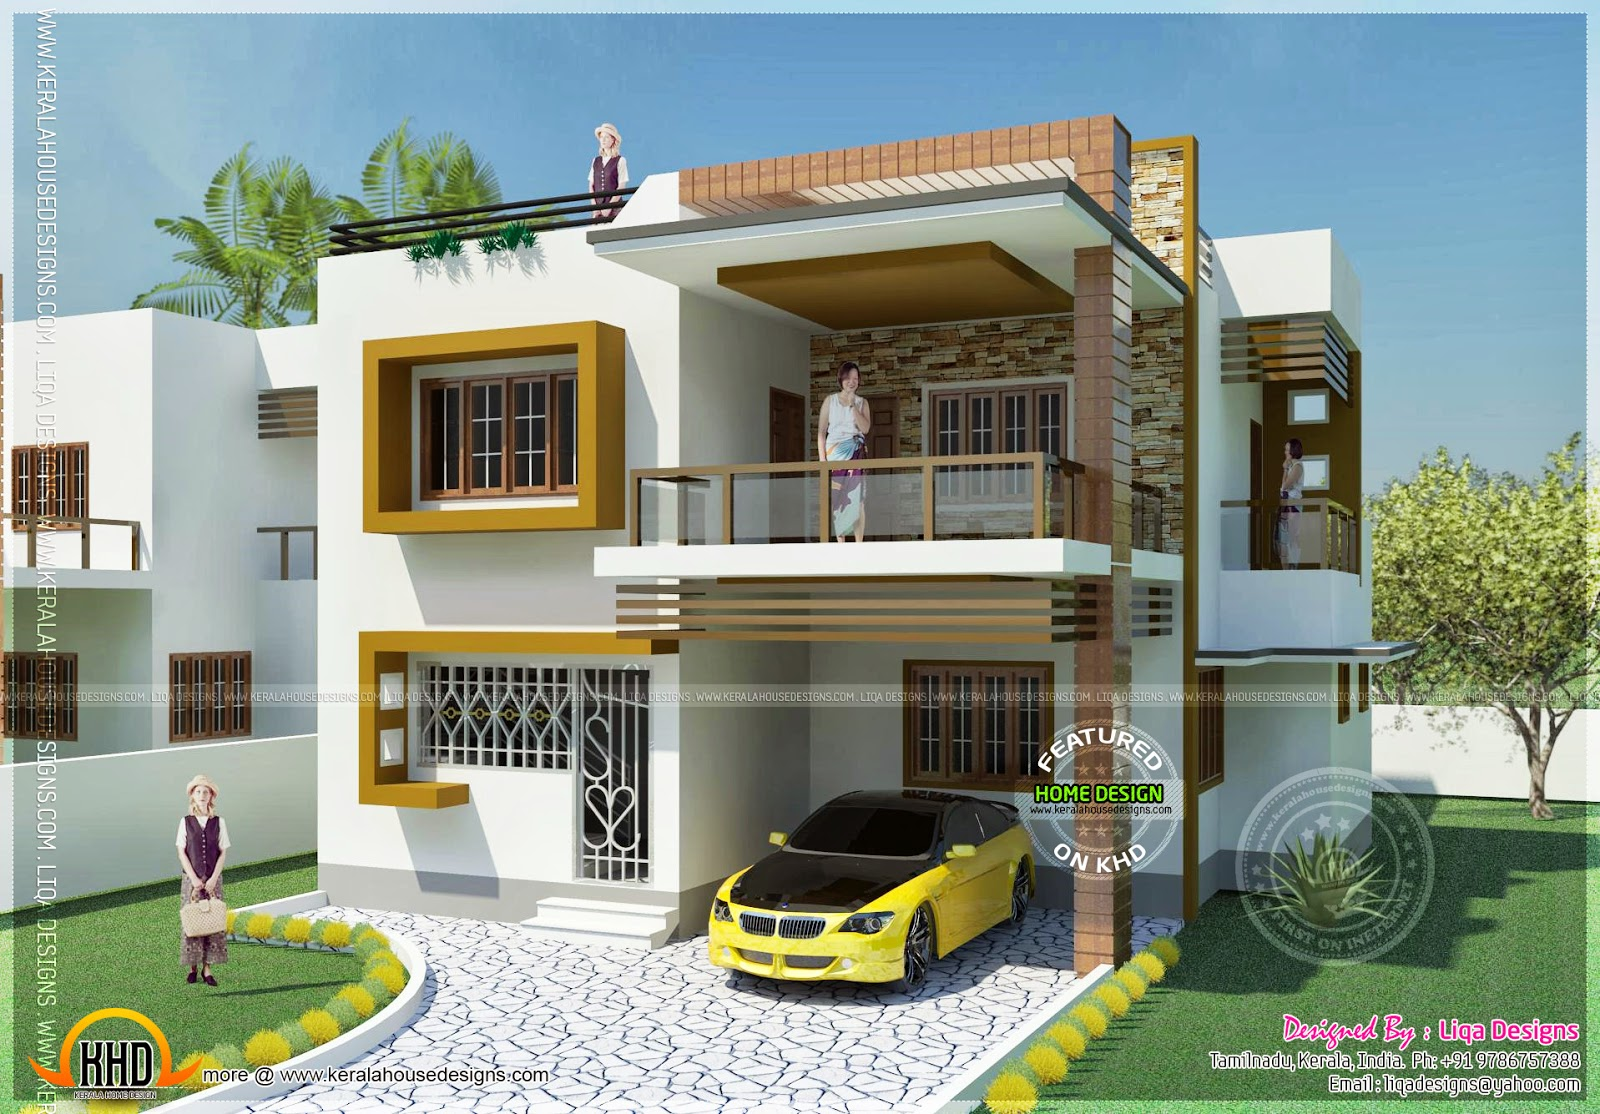 double storied tamilnadu house design kerala home design ForTamilnadu Home Design Photos